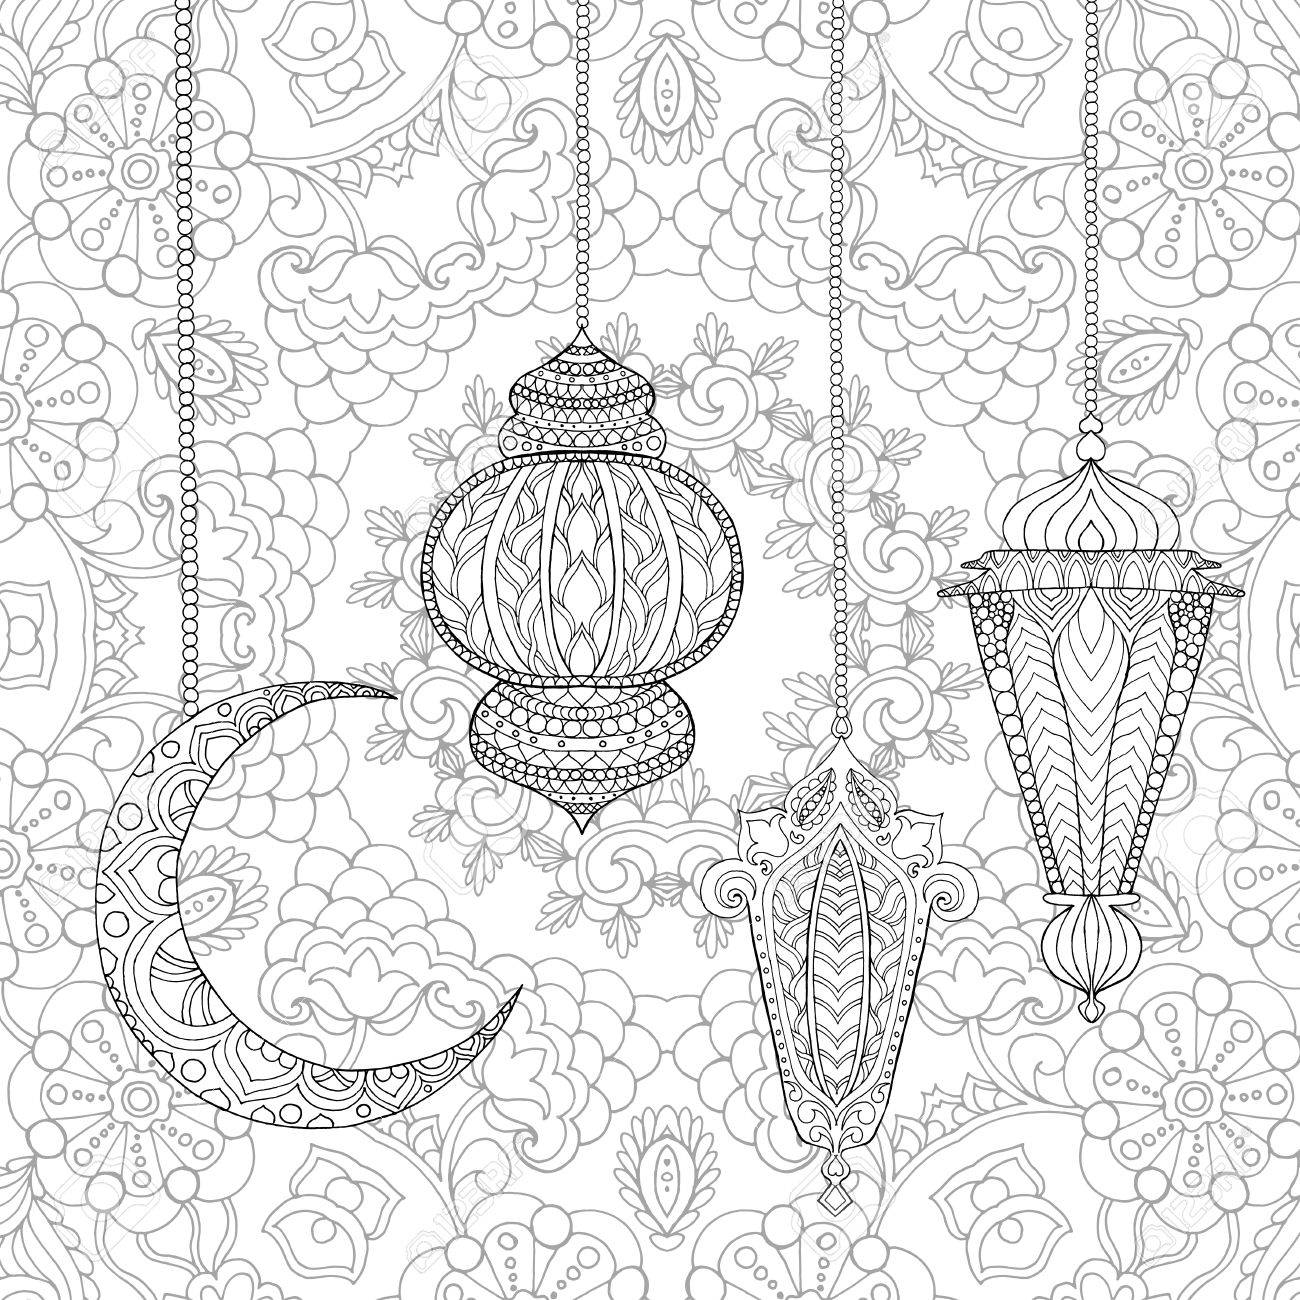 Ramadan Kareem Coloriage Conception De Voeux Grave Illustration